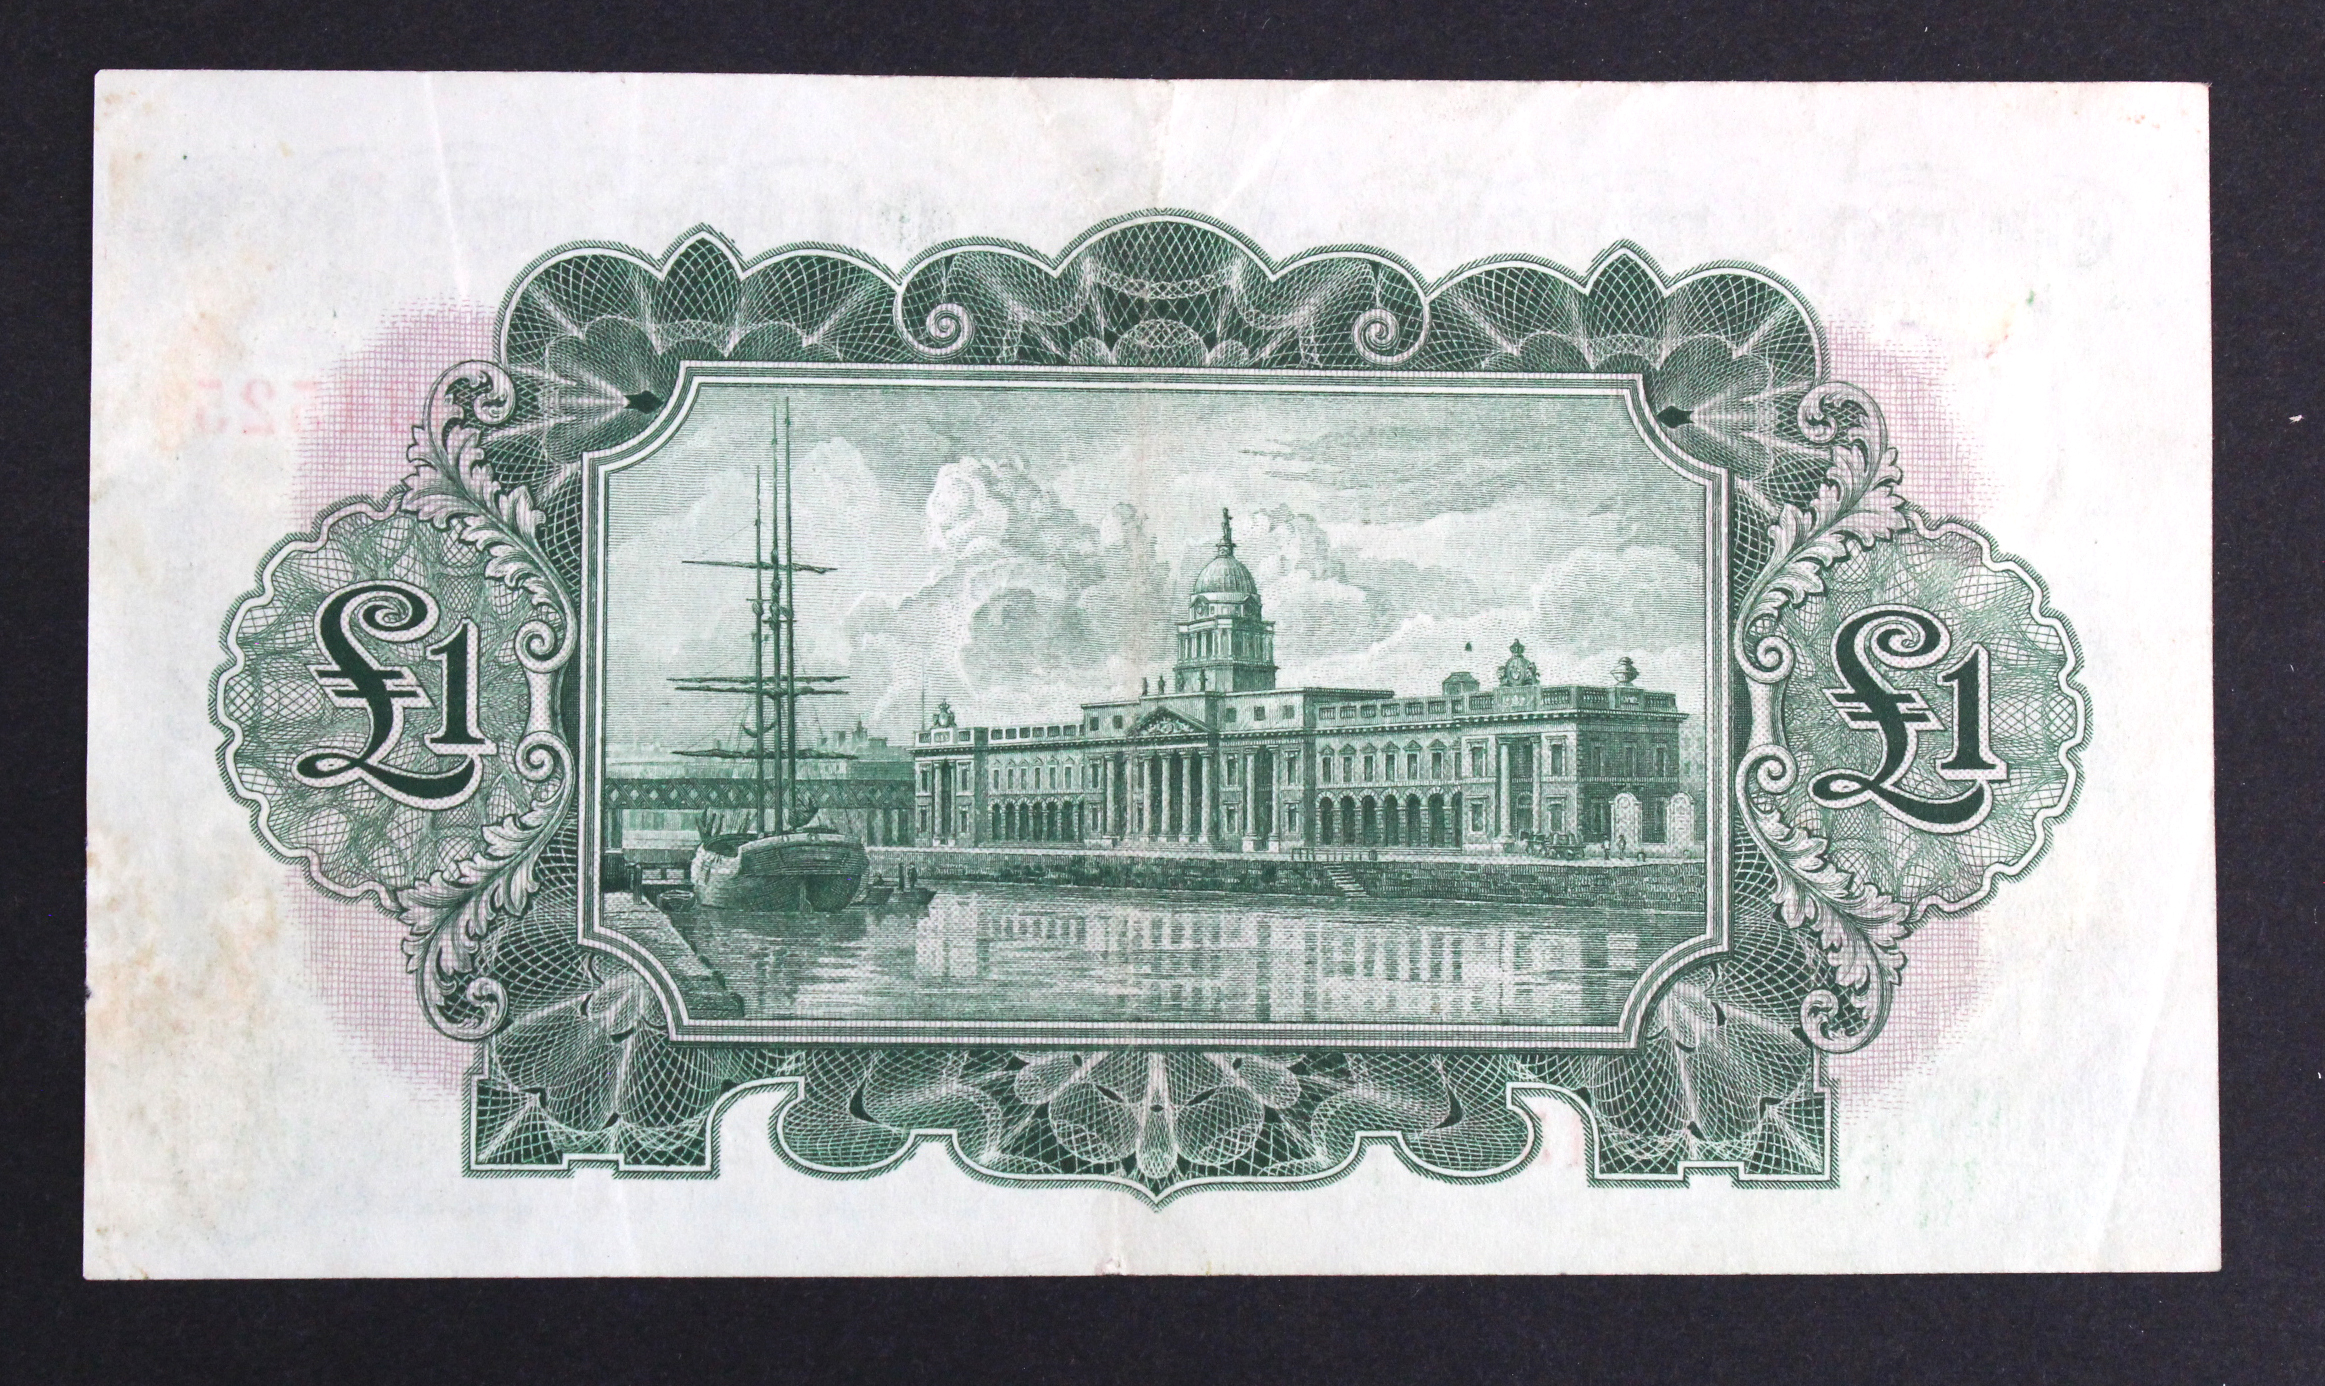 Ireland Republic 1 Pound dated 29th May 1936, The Bank of Ireland 'Ploughman' issue, serial 60BA - Image 2 of 2